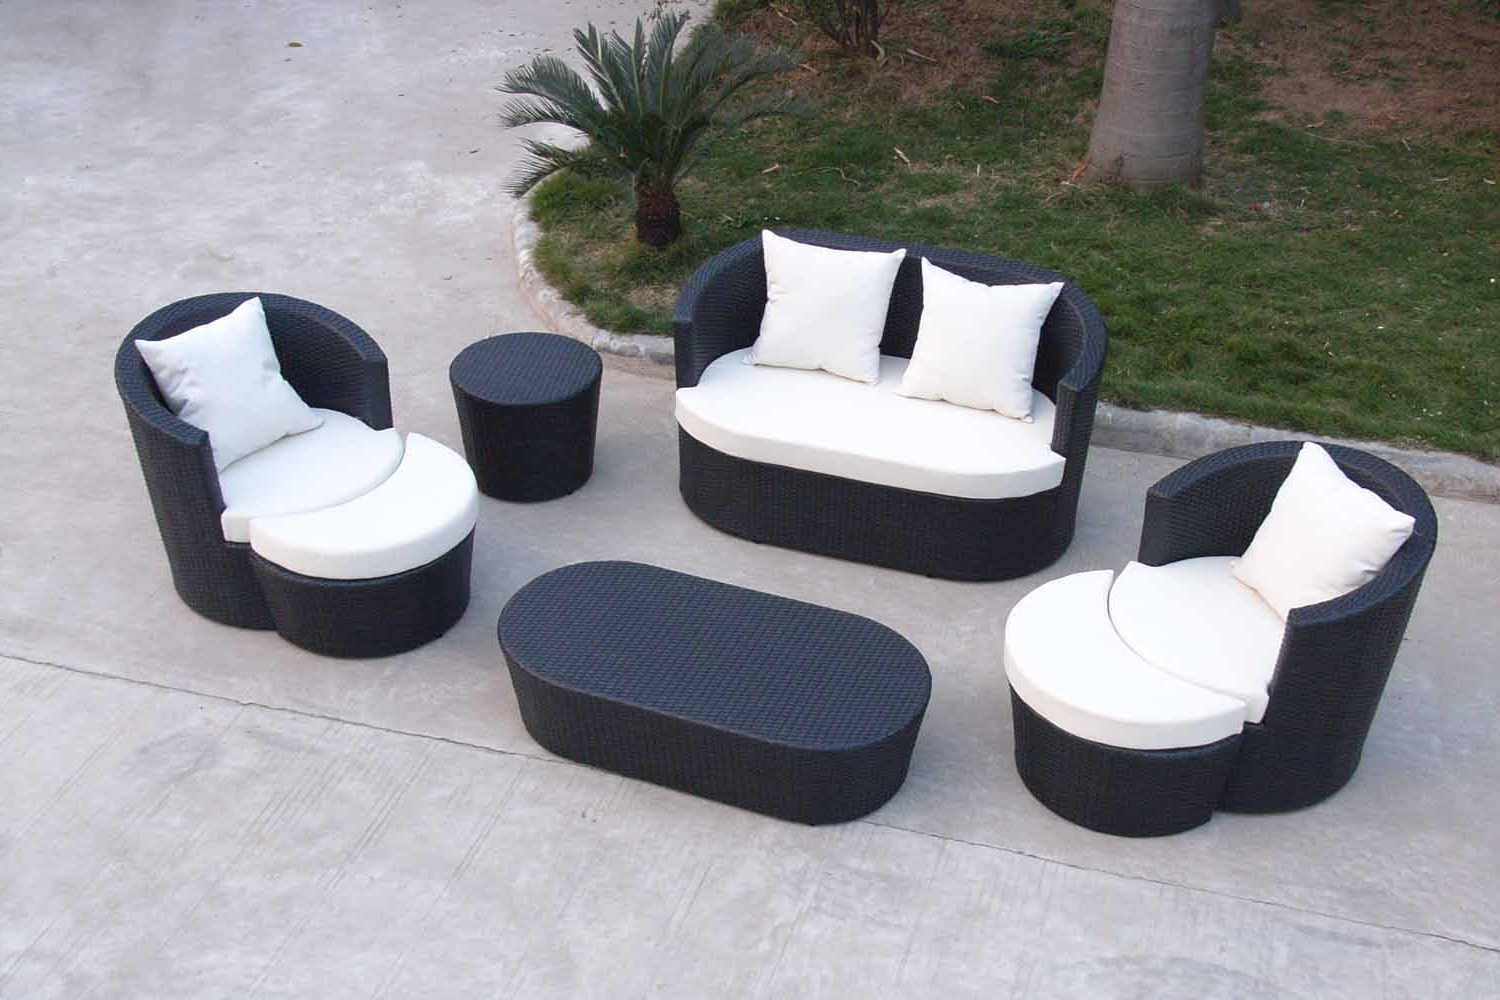 Sofa Design Ideas: Outdoor Couches Patio Furniture Sofa Chair Sets Pertaining To Fashionable Outdoor Sofa Chairs (View 10 of 20)